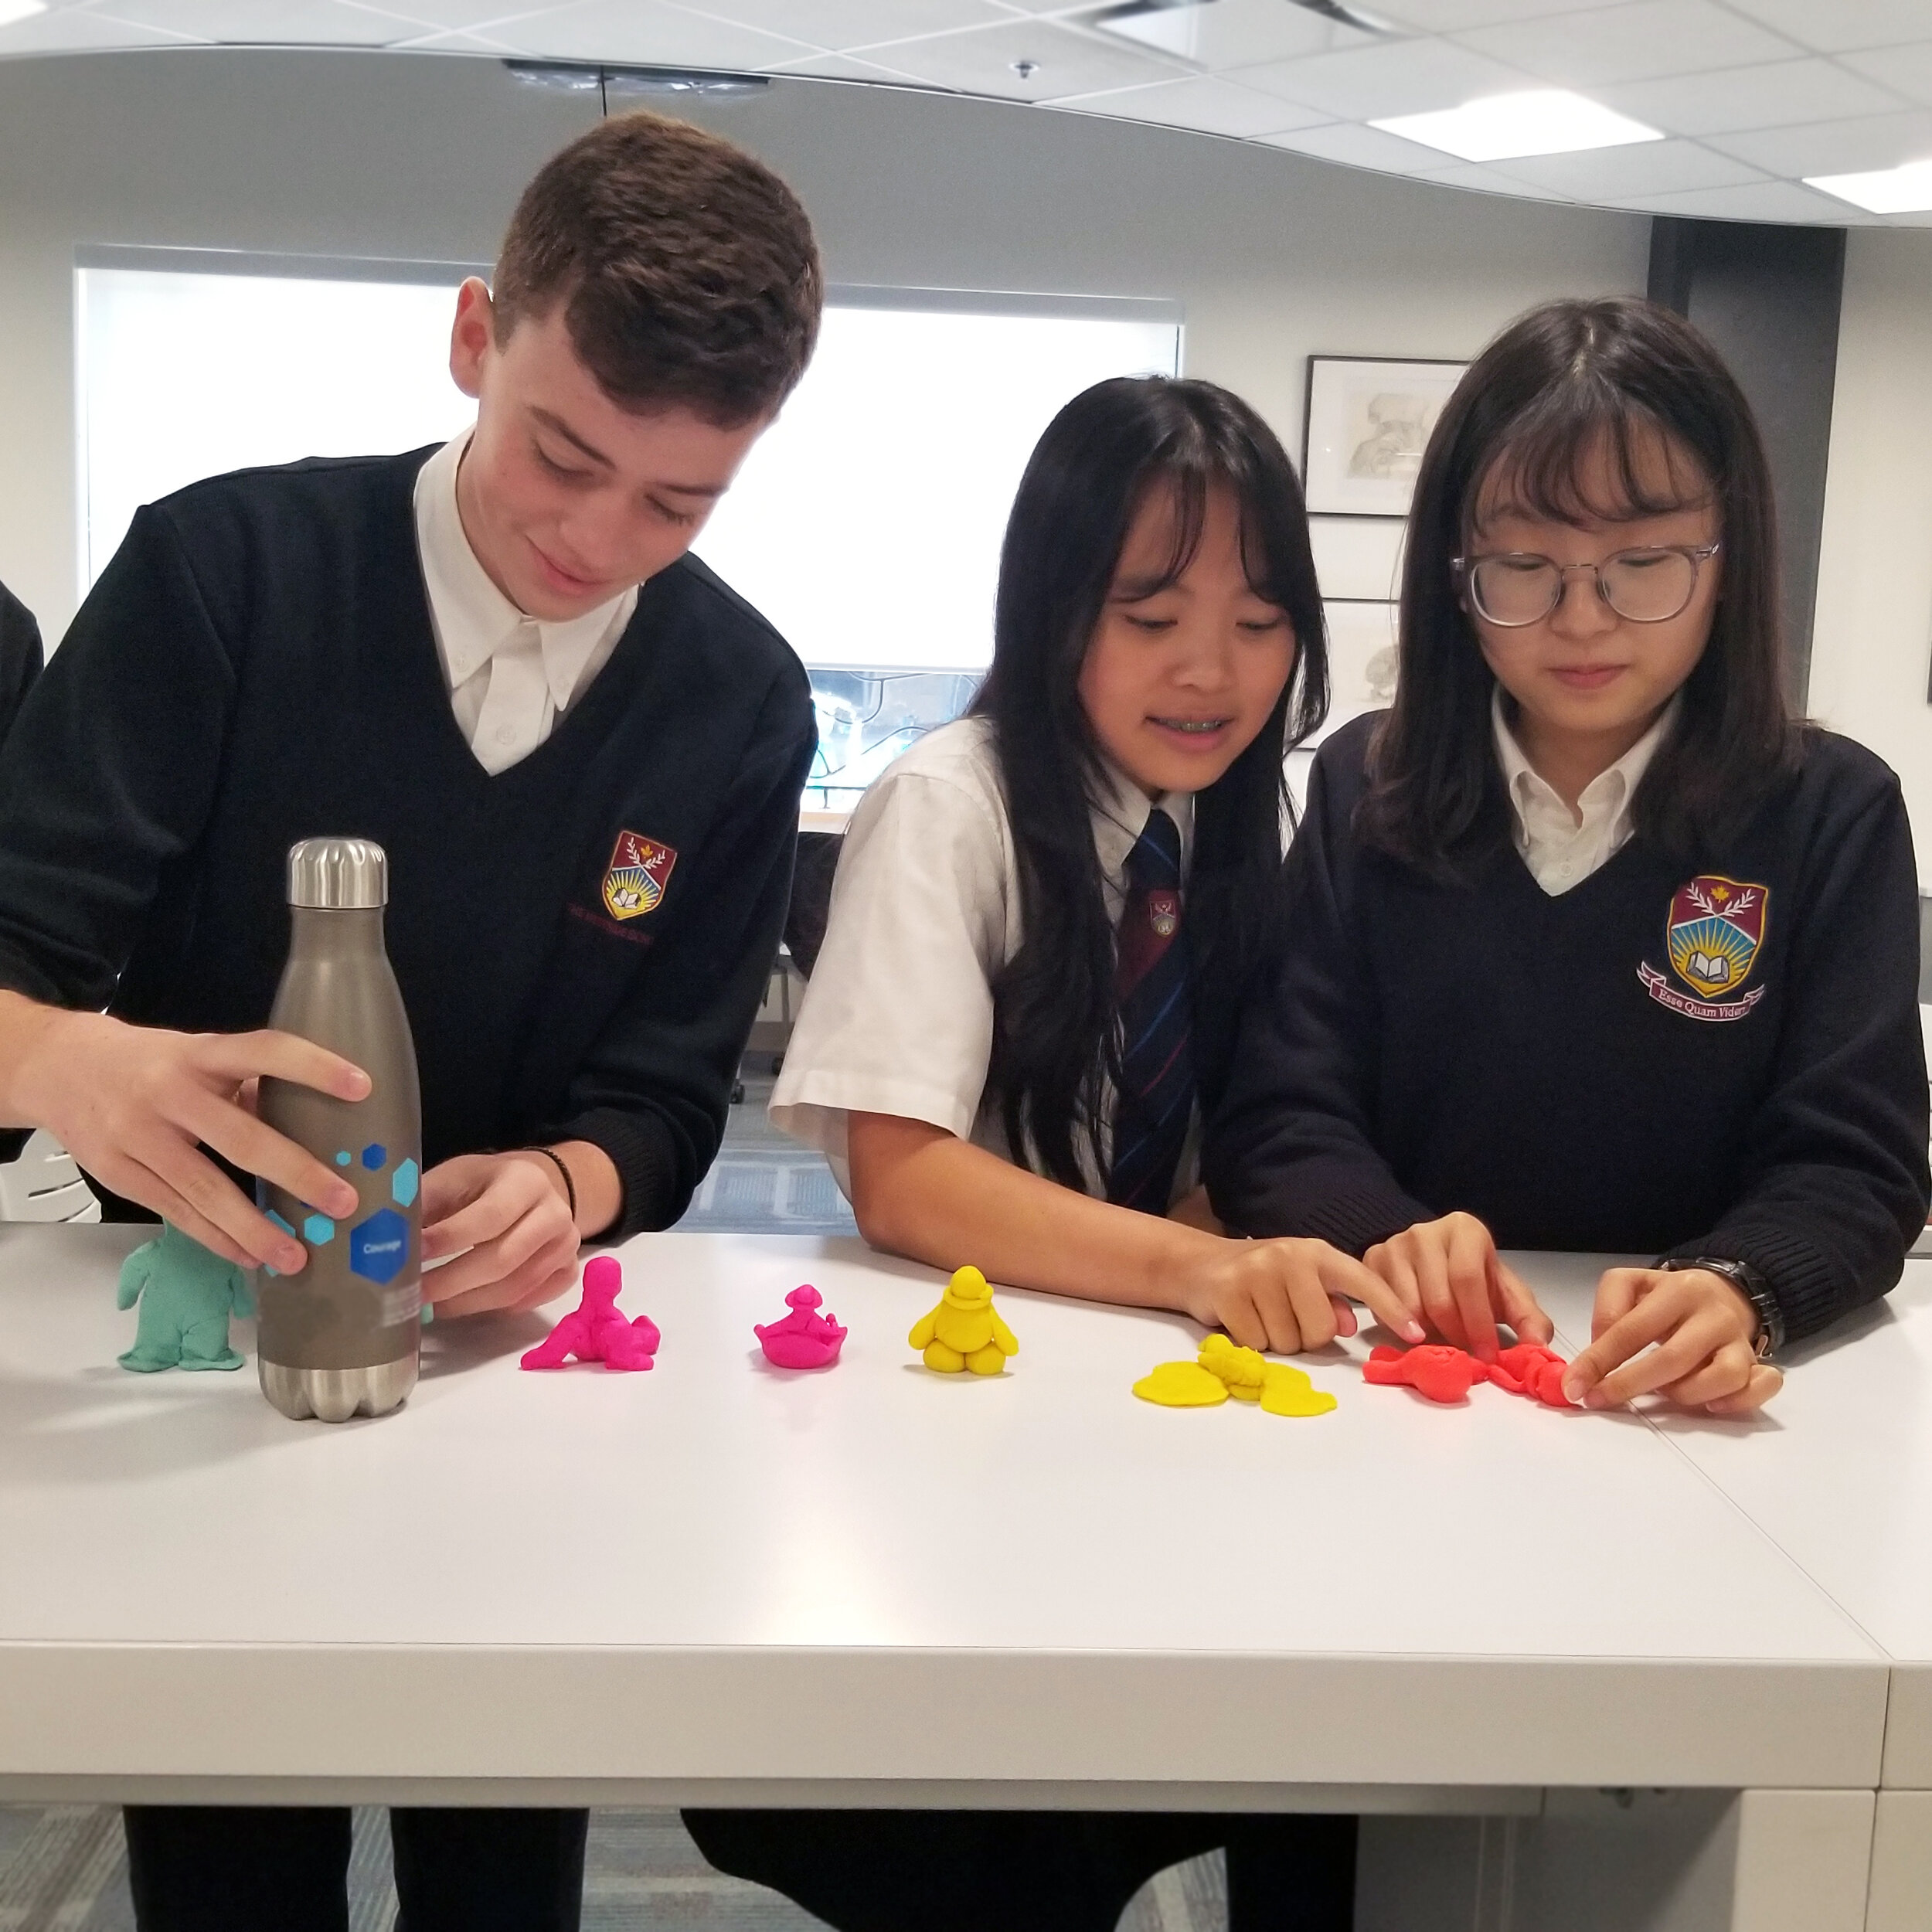 Students are learning about the philosophy of Plato through the creation of human figures made from Play-Doh.